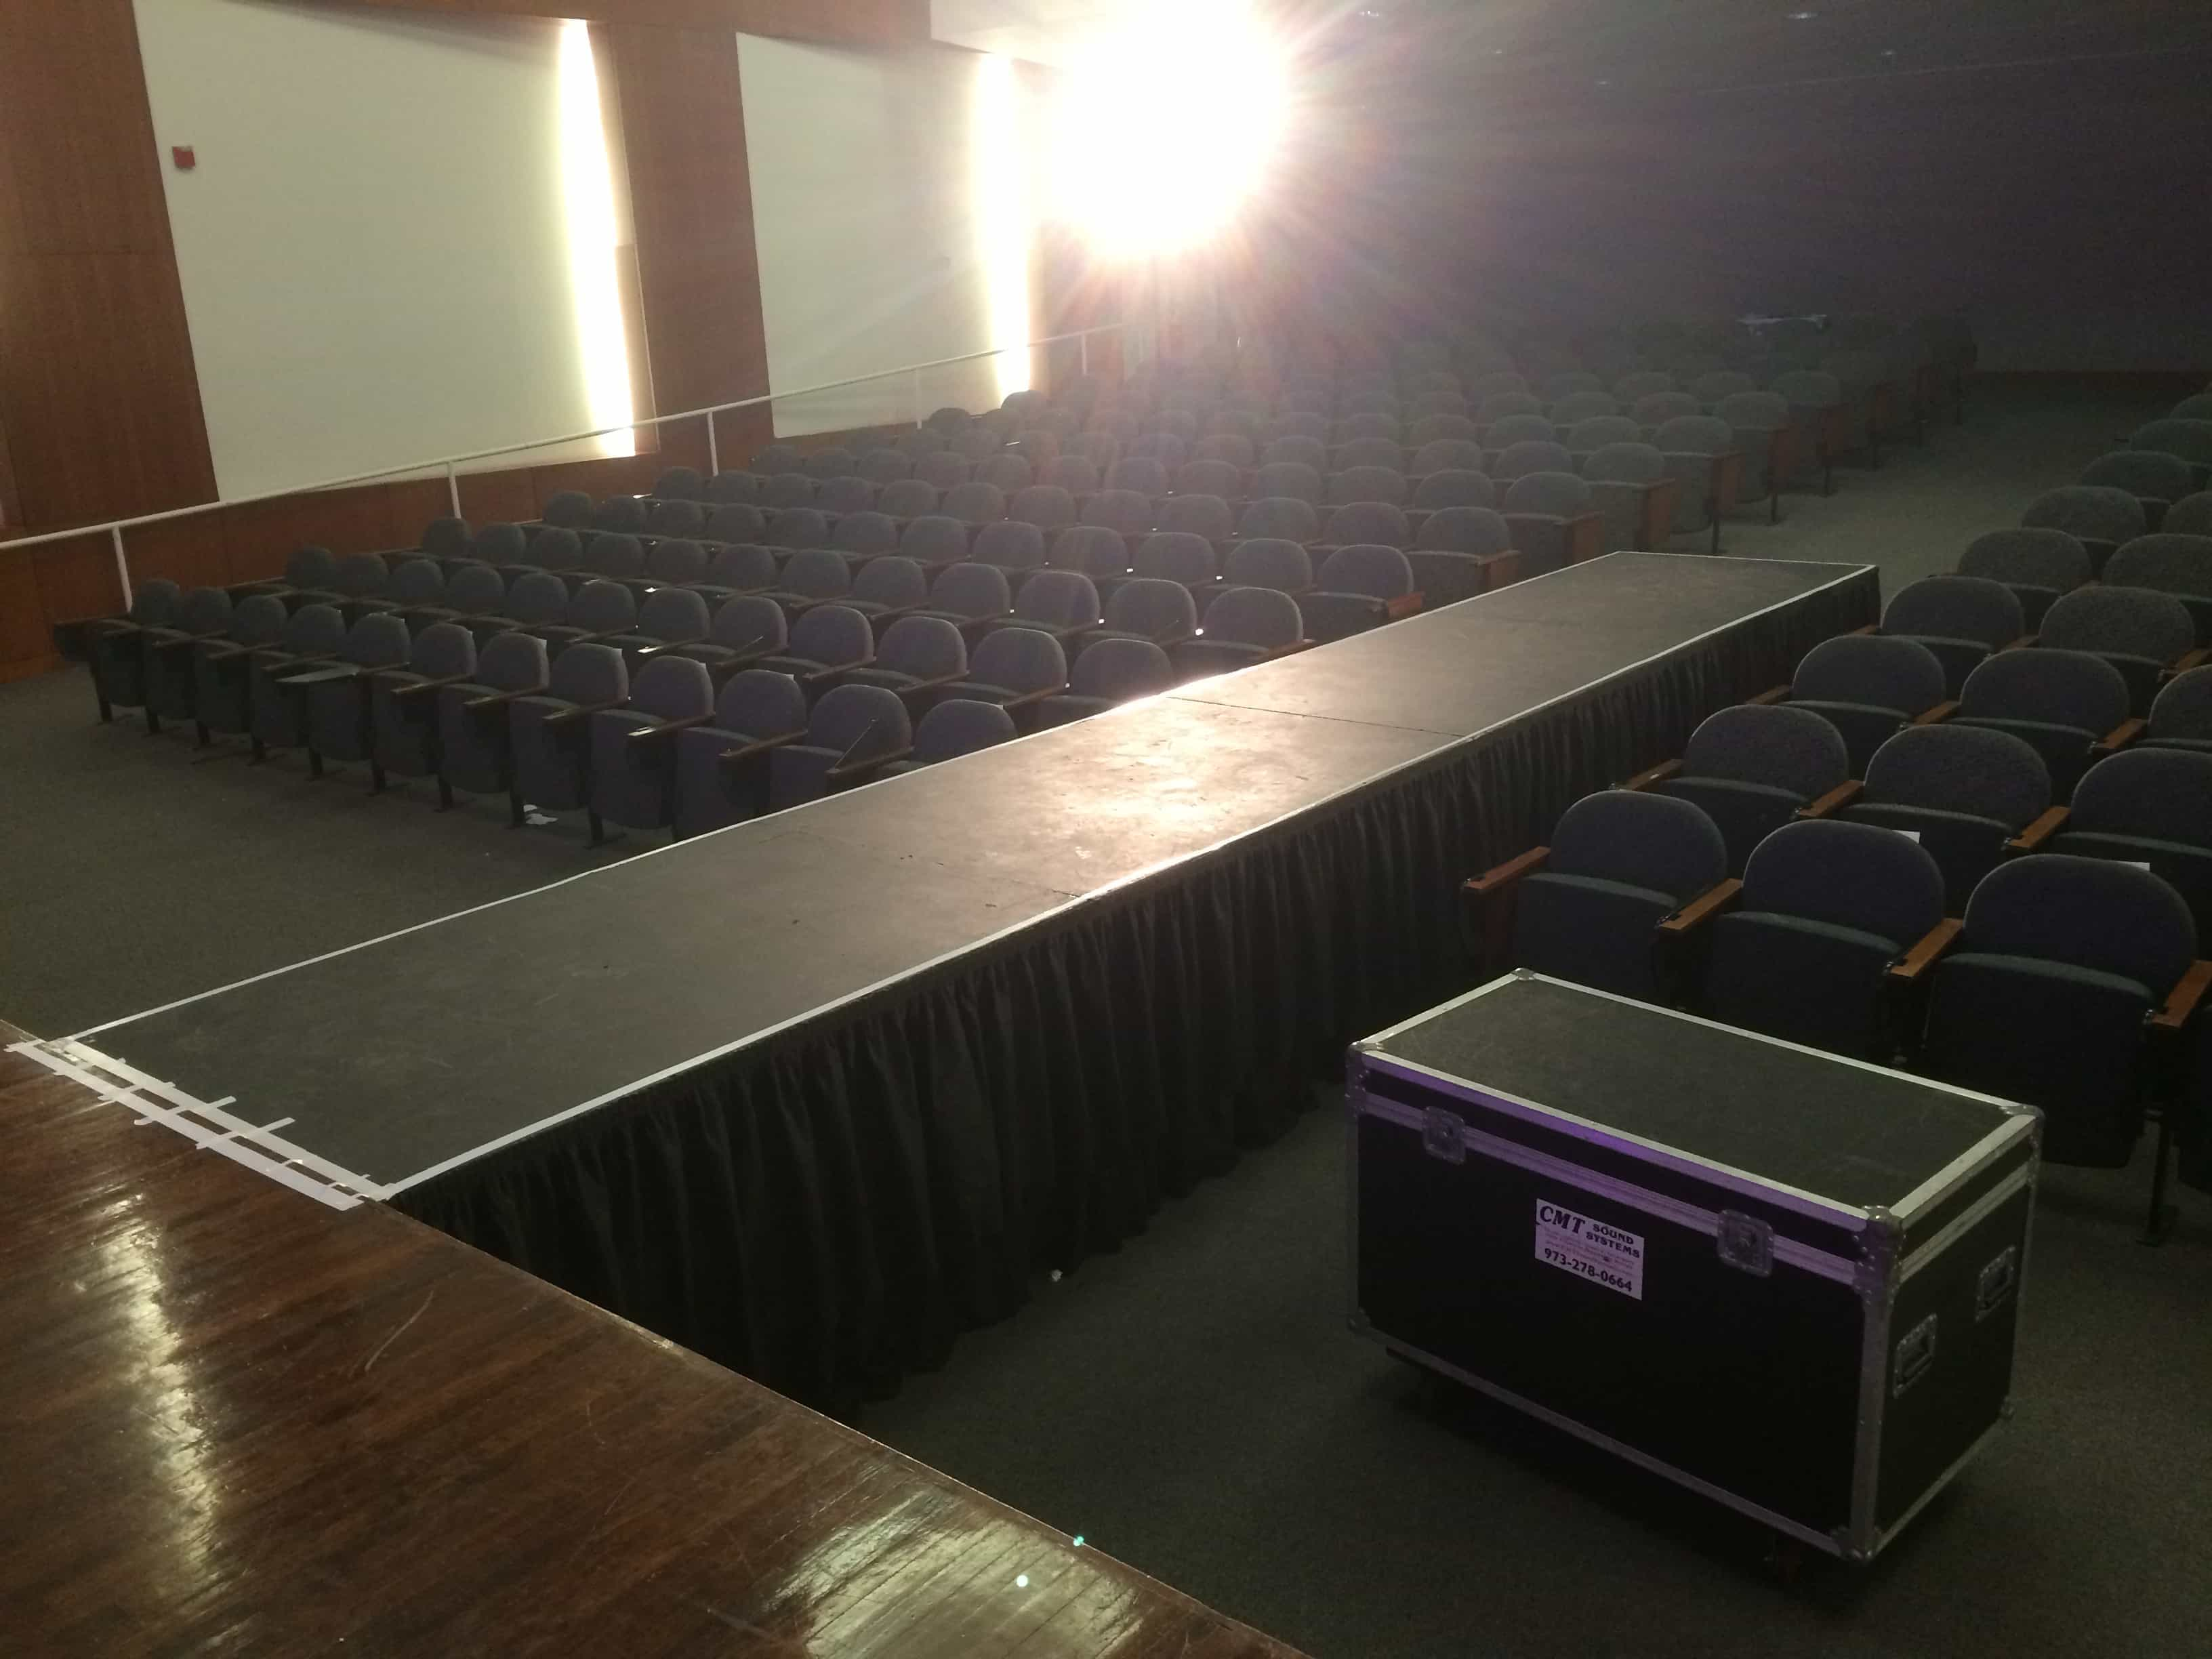 Fashion show staging sound and lighting in nj for Runway stages